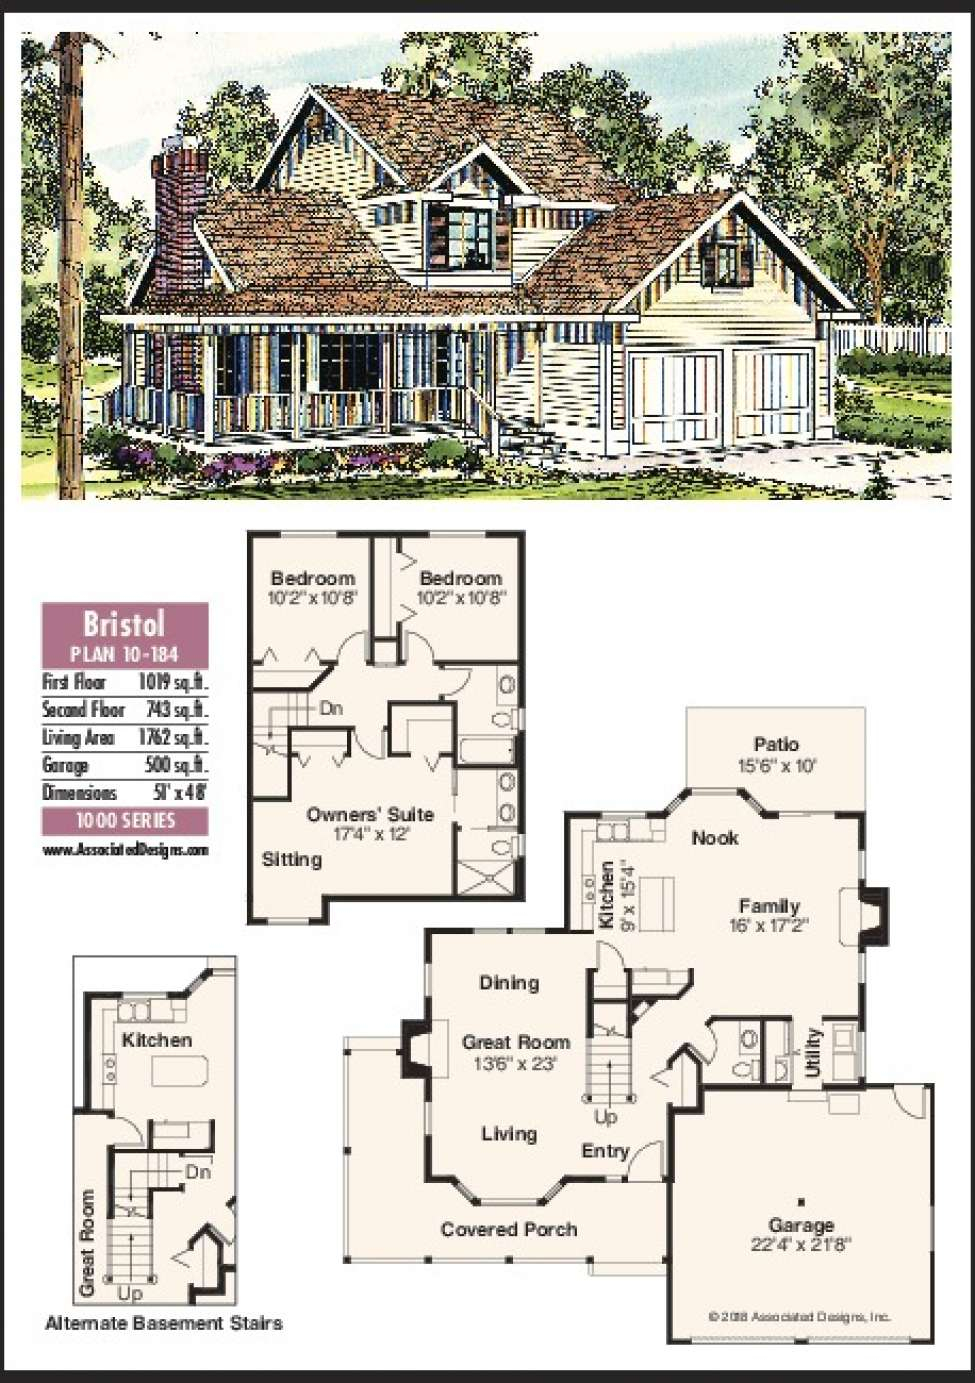 House Plans: The Bristol With Bristol Porch Swings (Image 20 of 25)